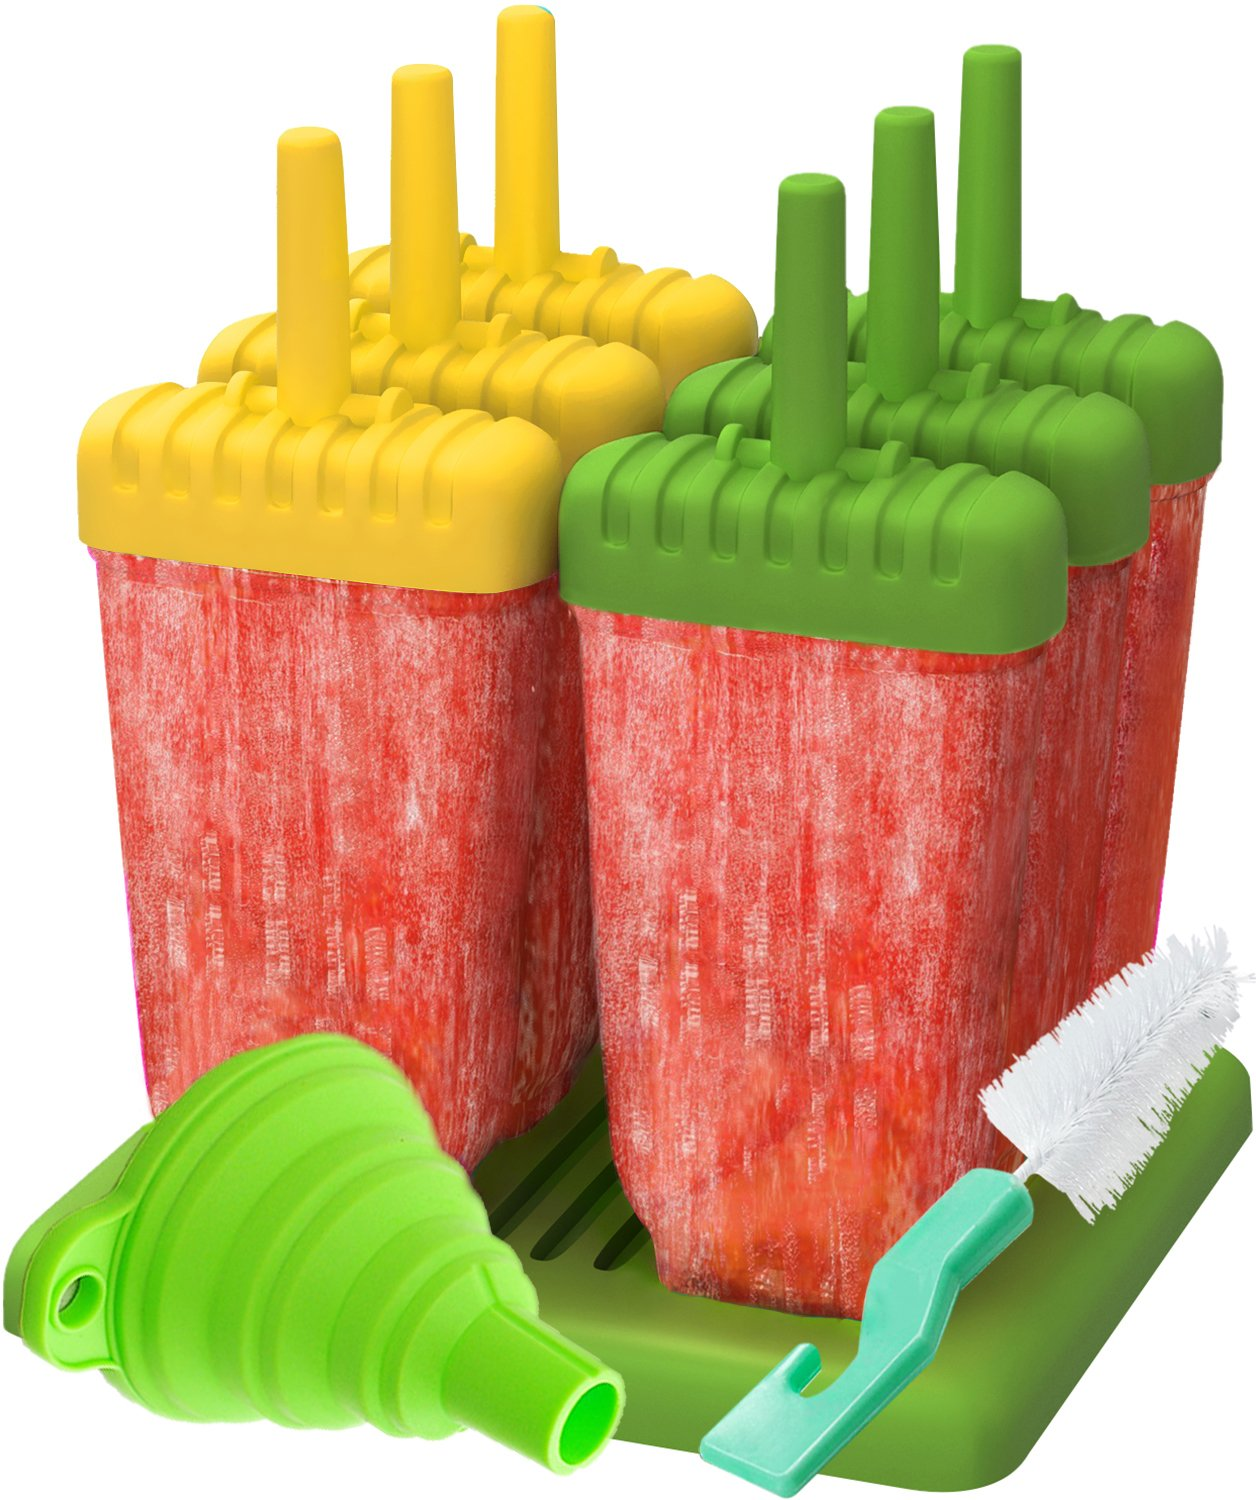 Ozera Popsicle Molds Maker Reusable Ice Pop Molds Trays for Homemade Popsicles With Silicone Funnel /& Cleaning Brush Three Colors Set of 6